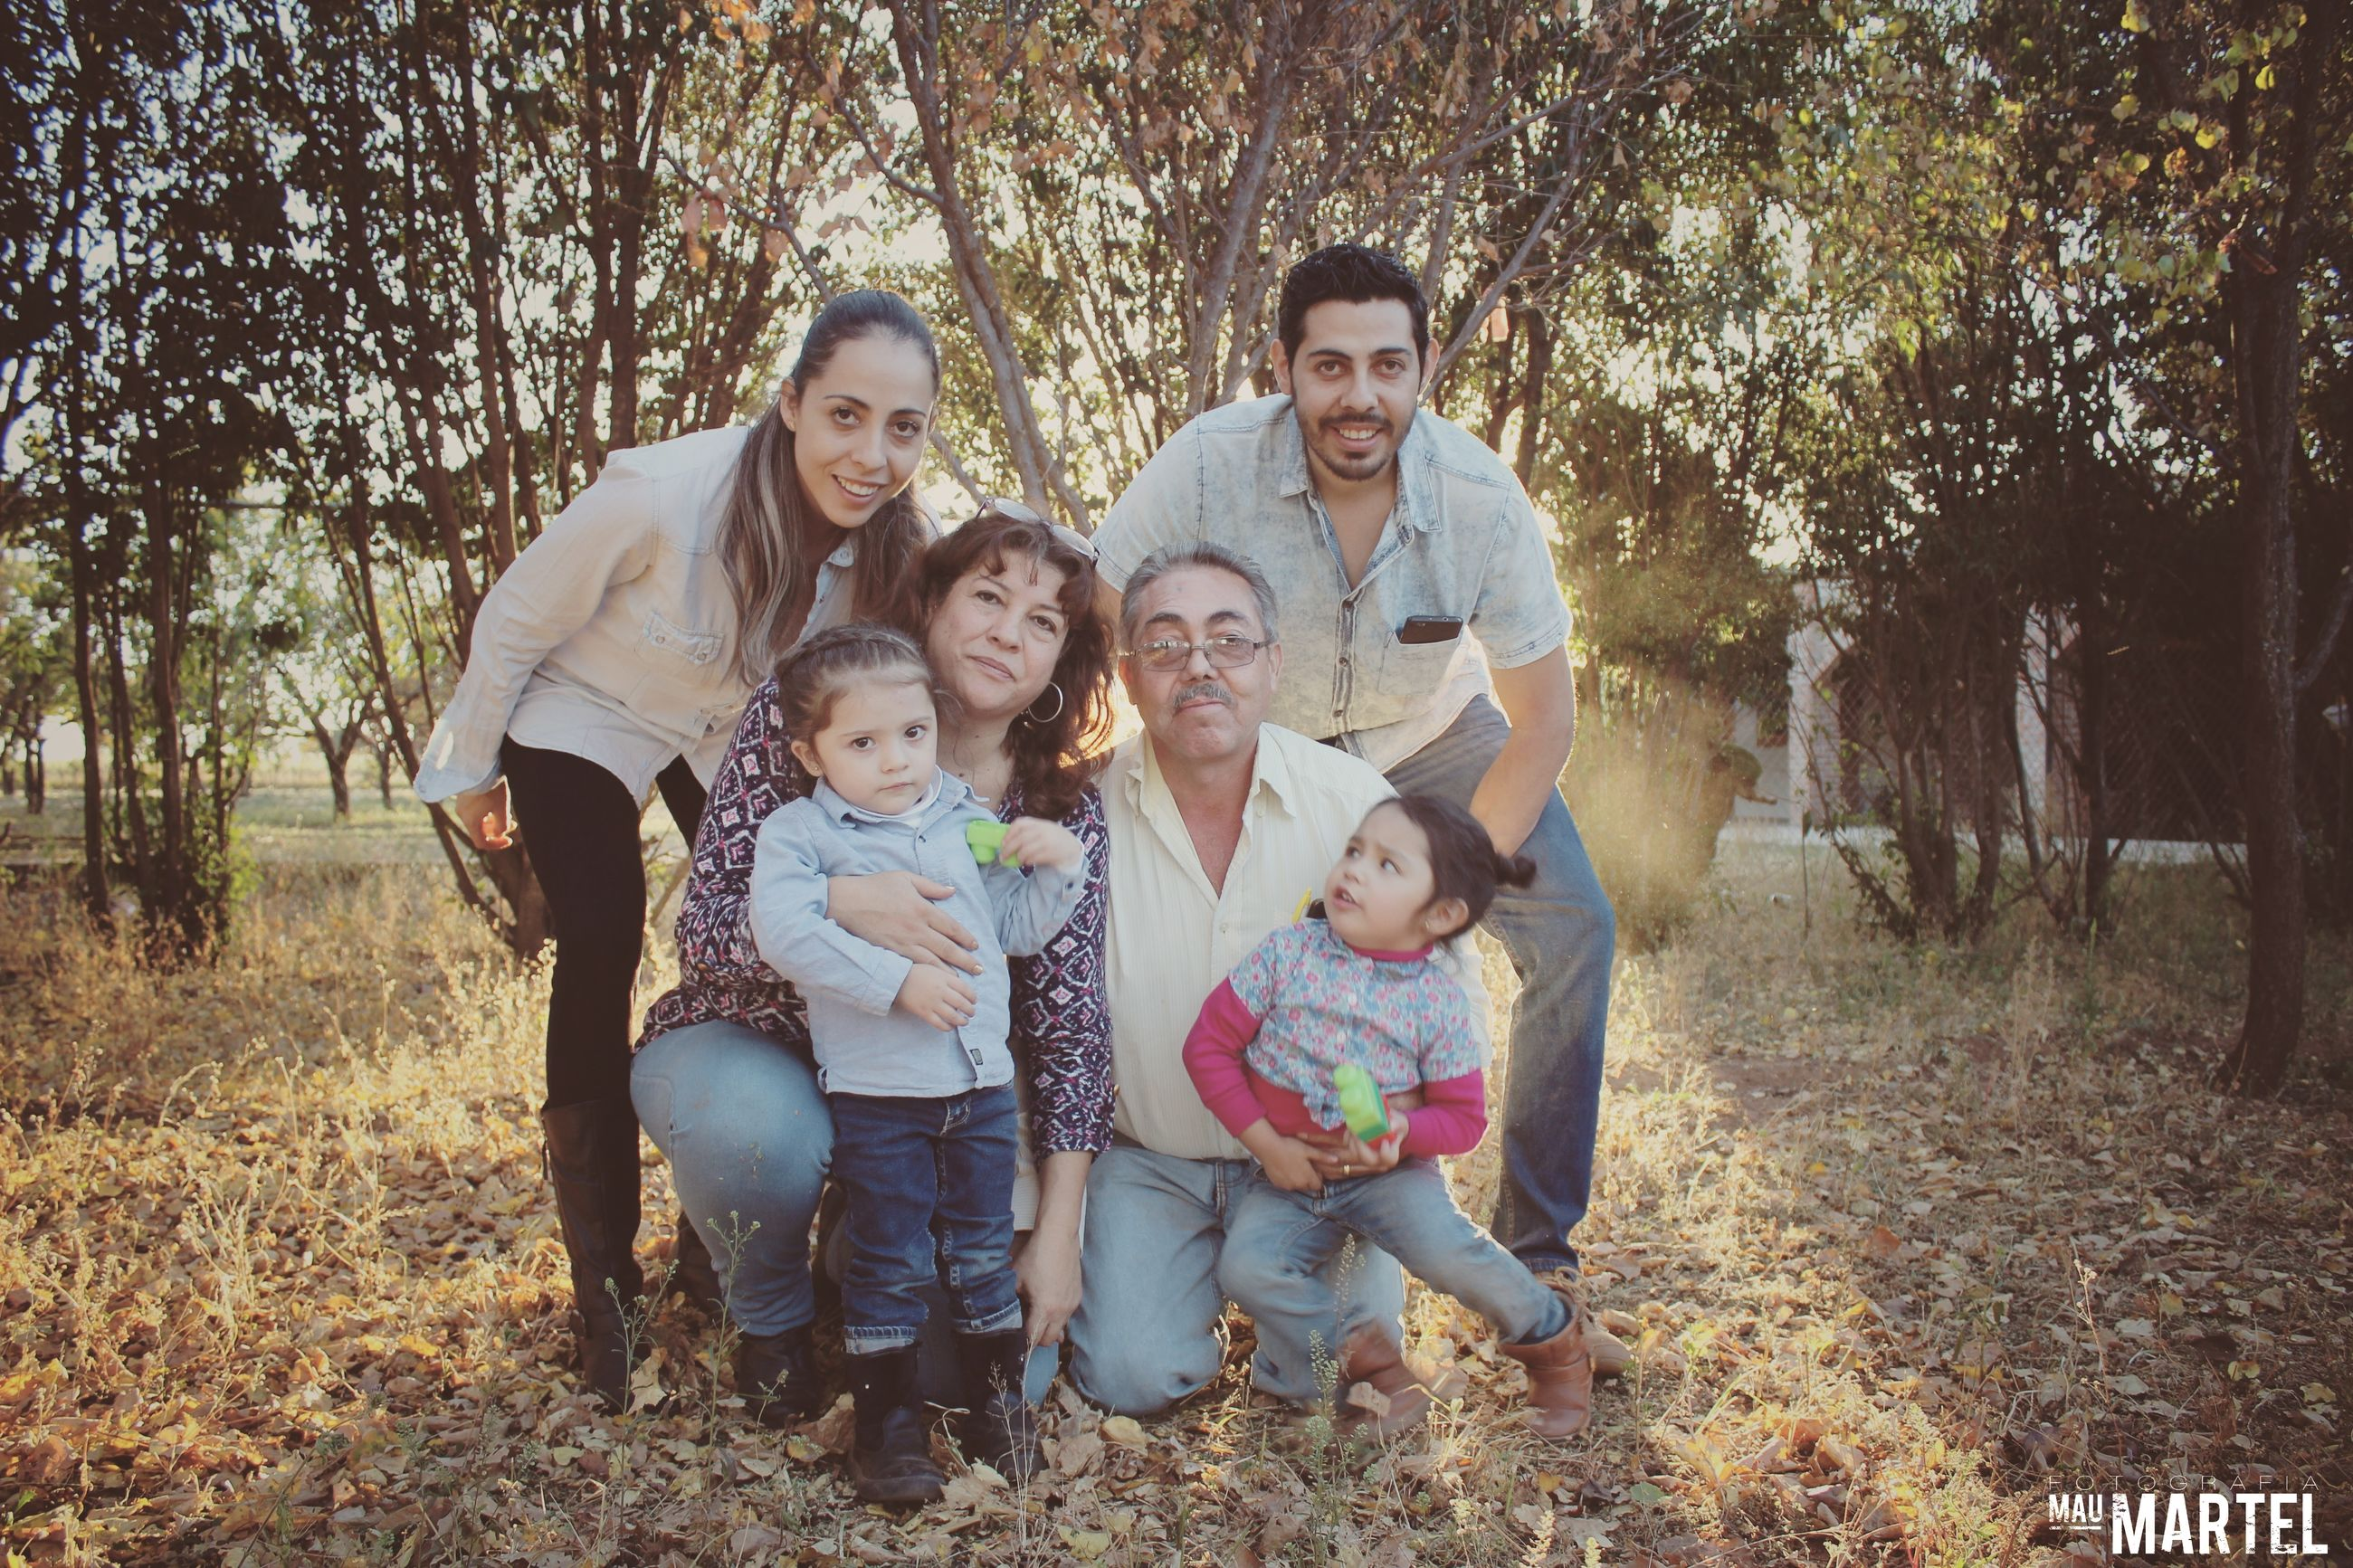 father, togetherness, tree, mother, mid adult, mid adult men, girls, boys, looking at camera, portrait, child, happiness, casual clothing, full length, daughter, family, son, front view, grass, day, childhood, outdoors, smiling, men, mature adult, women, sitting, females, bonding, lifestyles, forest, real people, nature, young women, young adult, adult, people